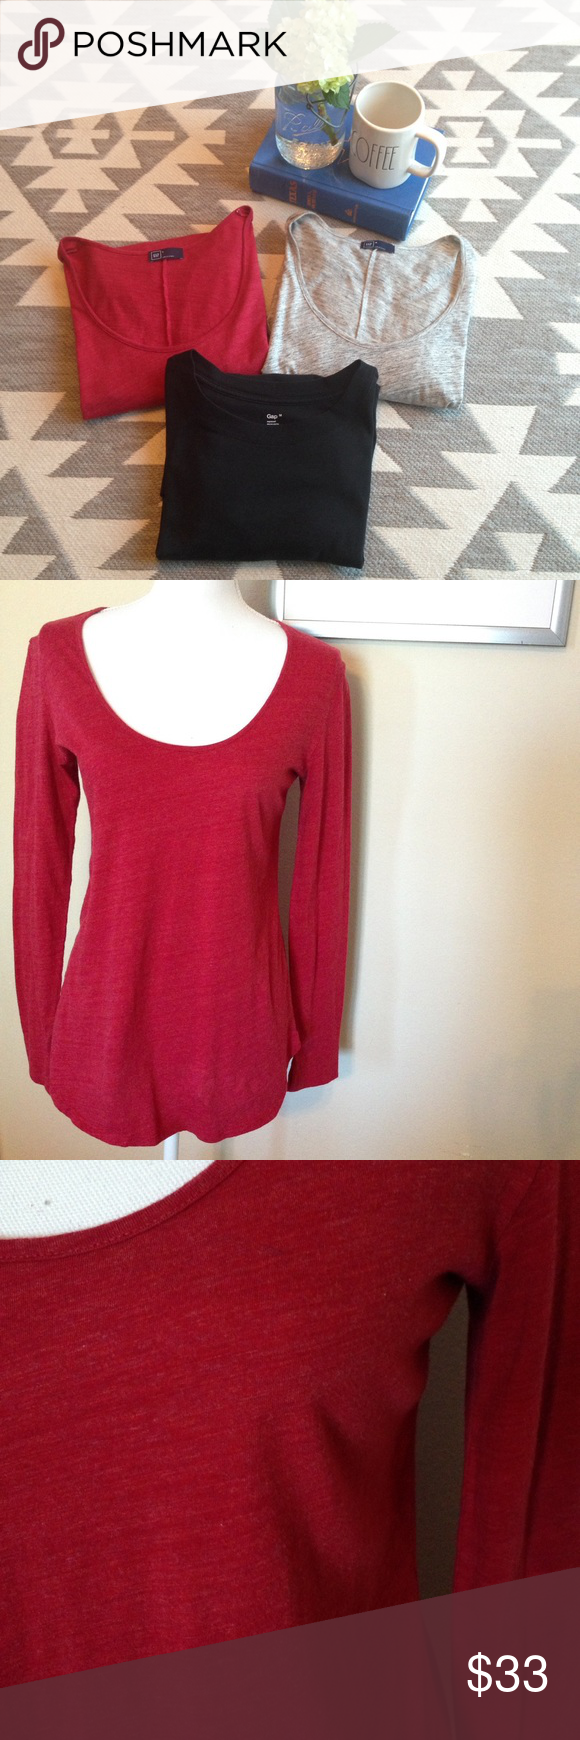 3 Gap long sleeve tops. 3 long sleeve Gap tops, 2 mediums and 1 small. Excellent condition! GAP Tops Tees - Long Sleeve